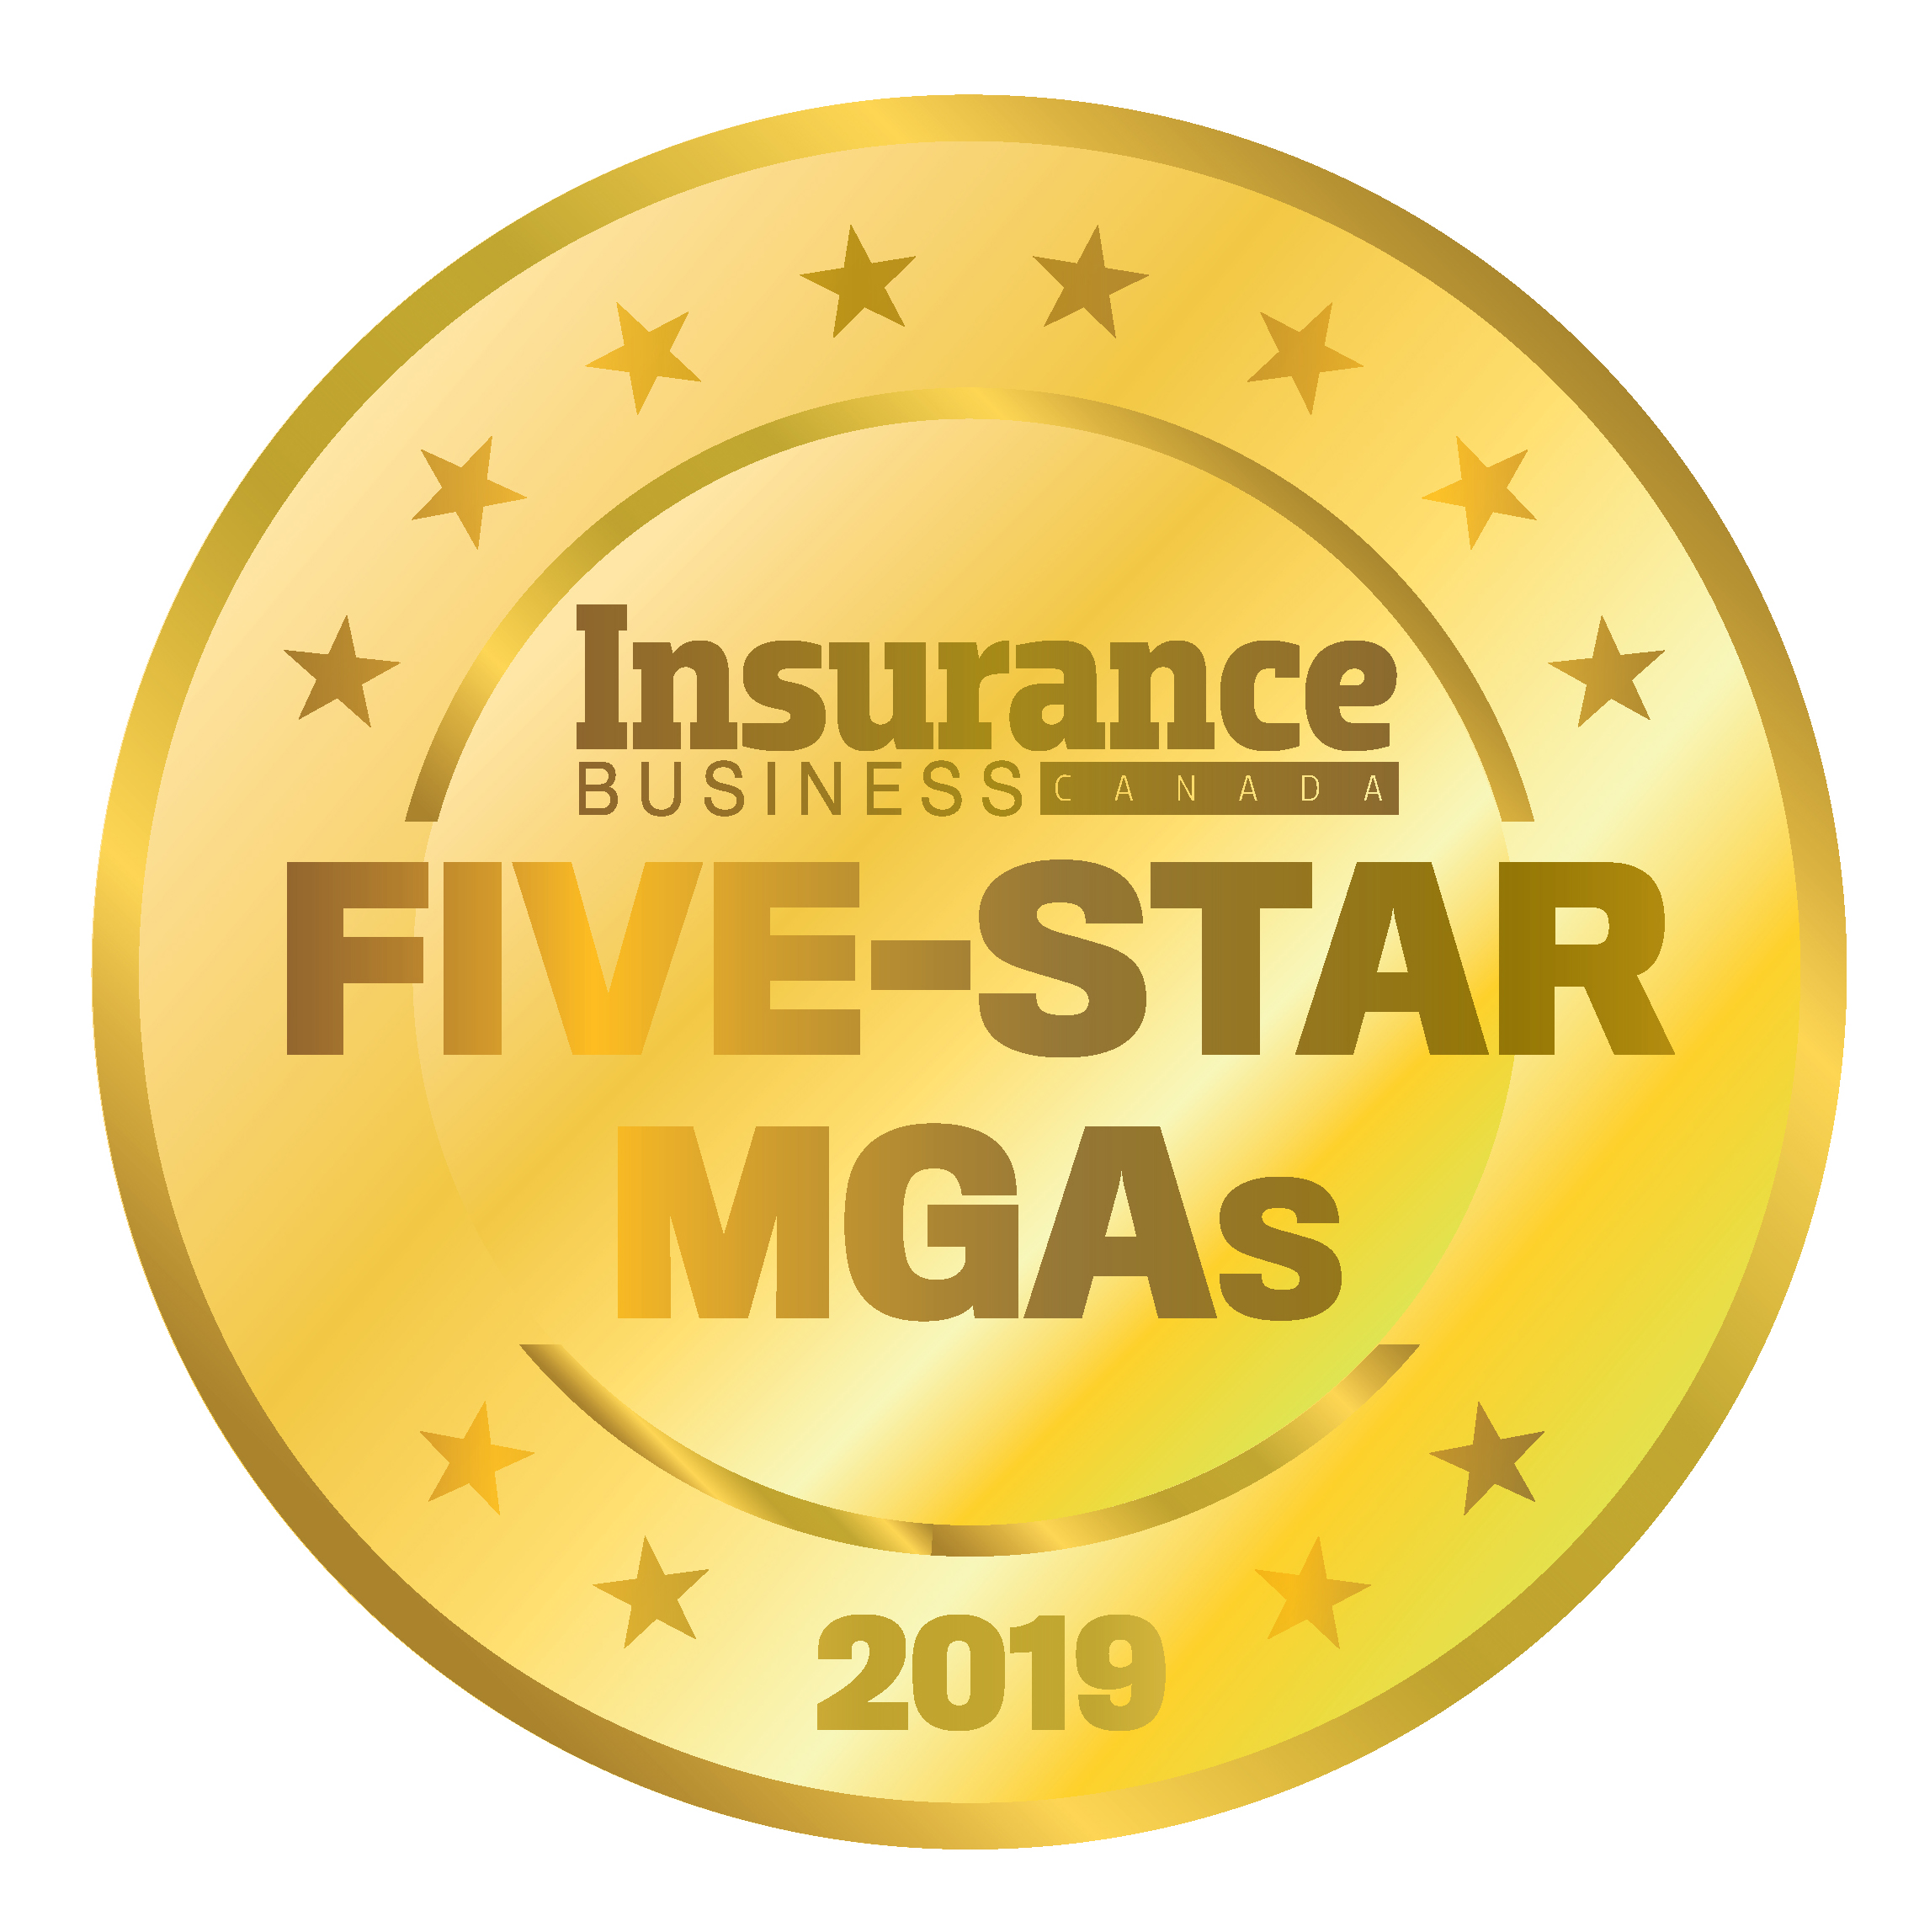 Five-Star MGAs 2019